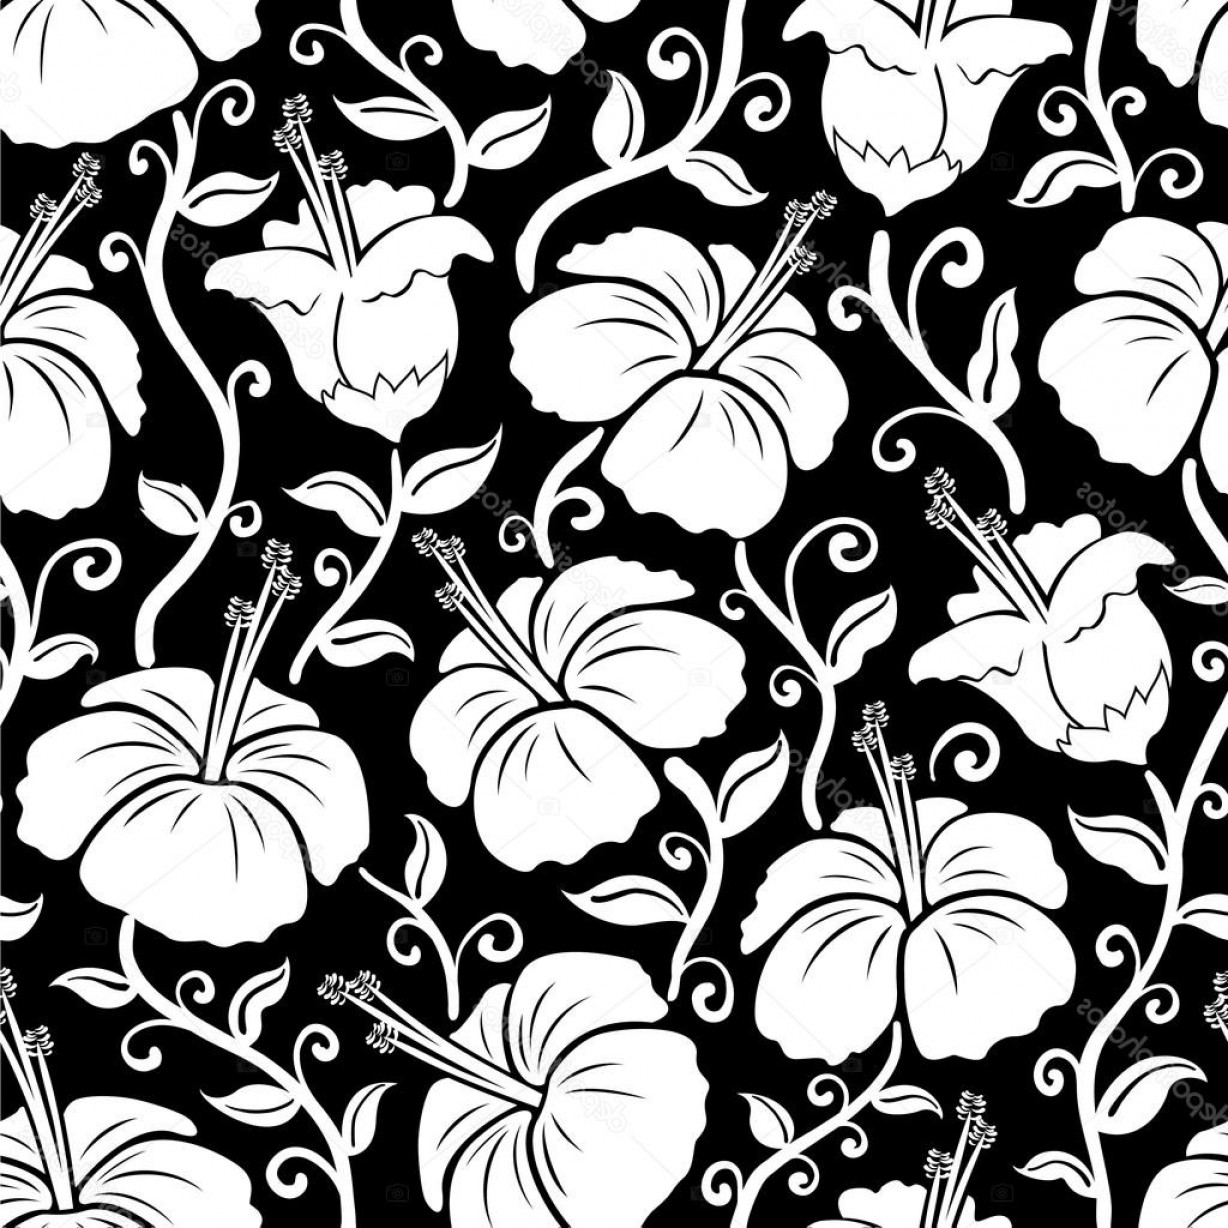 Hawaiian Flower Seamless Vector Pattern: Stylish Stock Illustration Hawaiian Print Seamless Hibiscus Flower